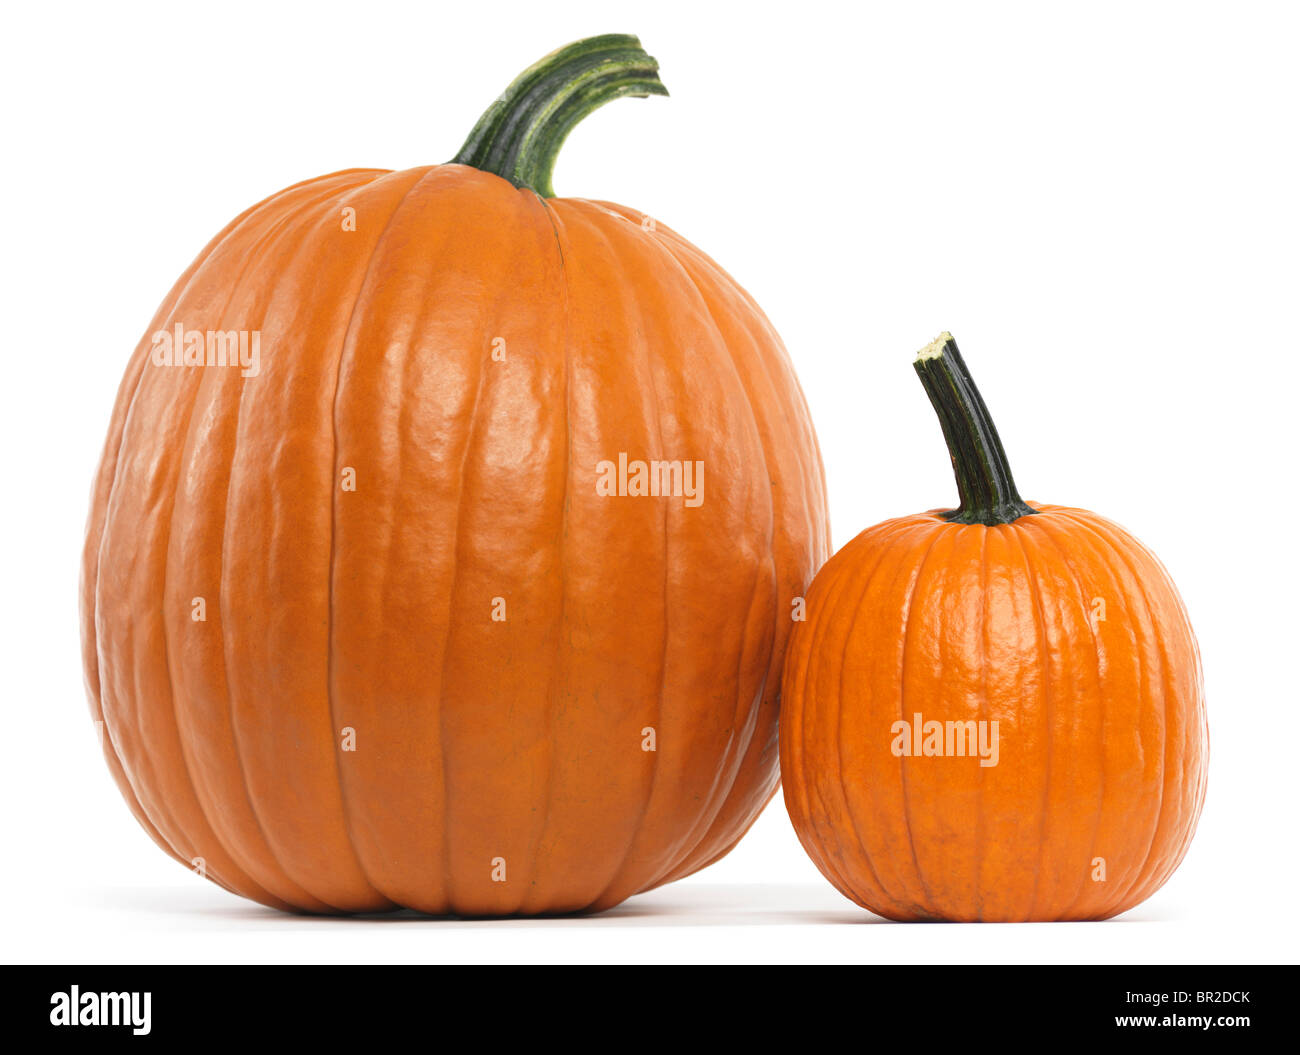 Large and a small pumpkin isolated on white background - Stock Image